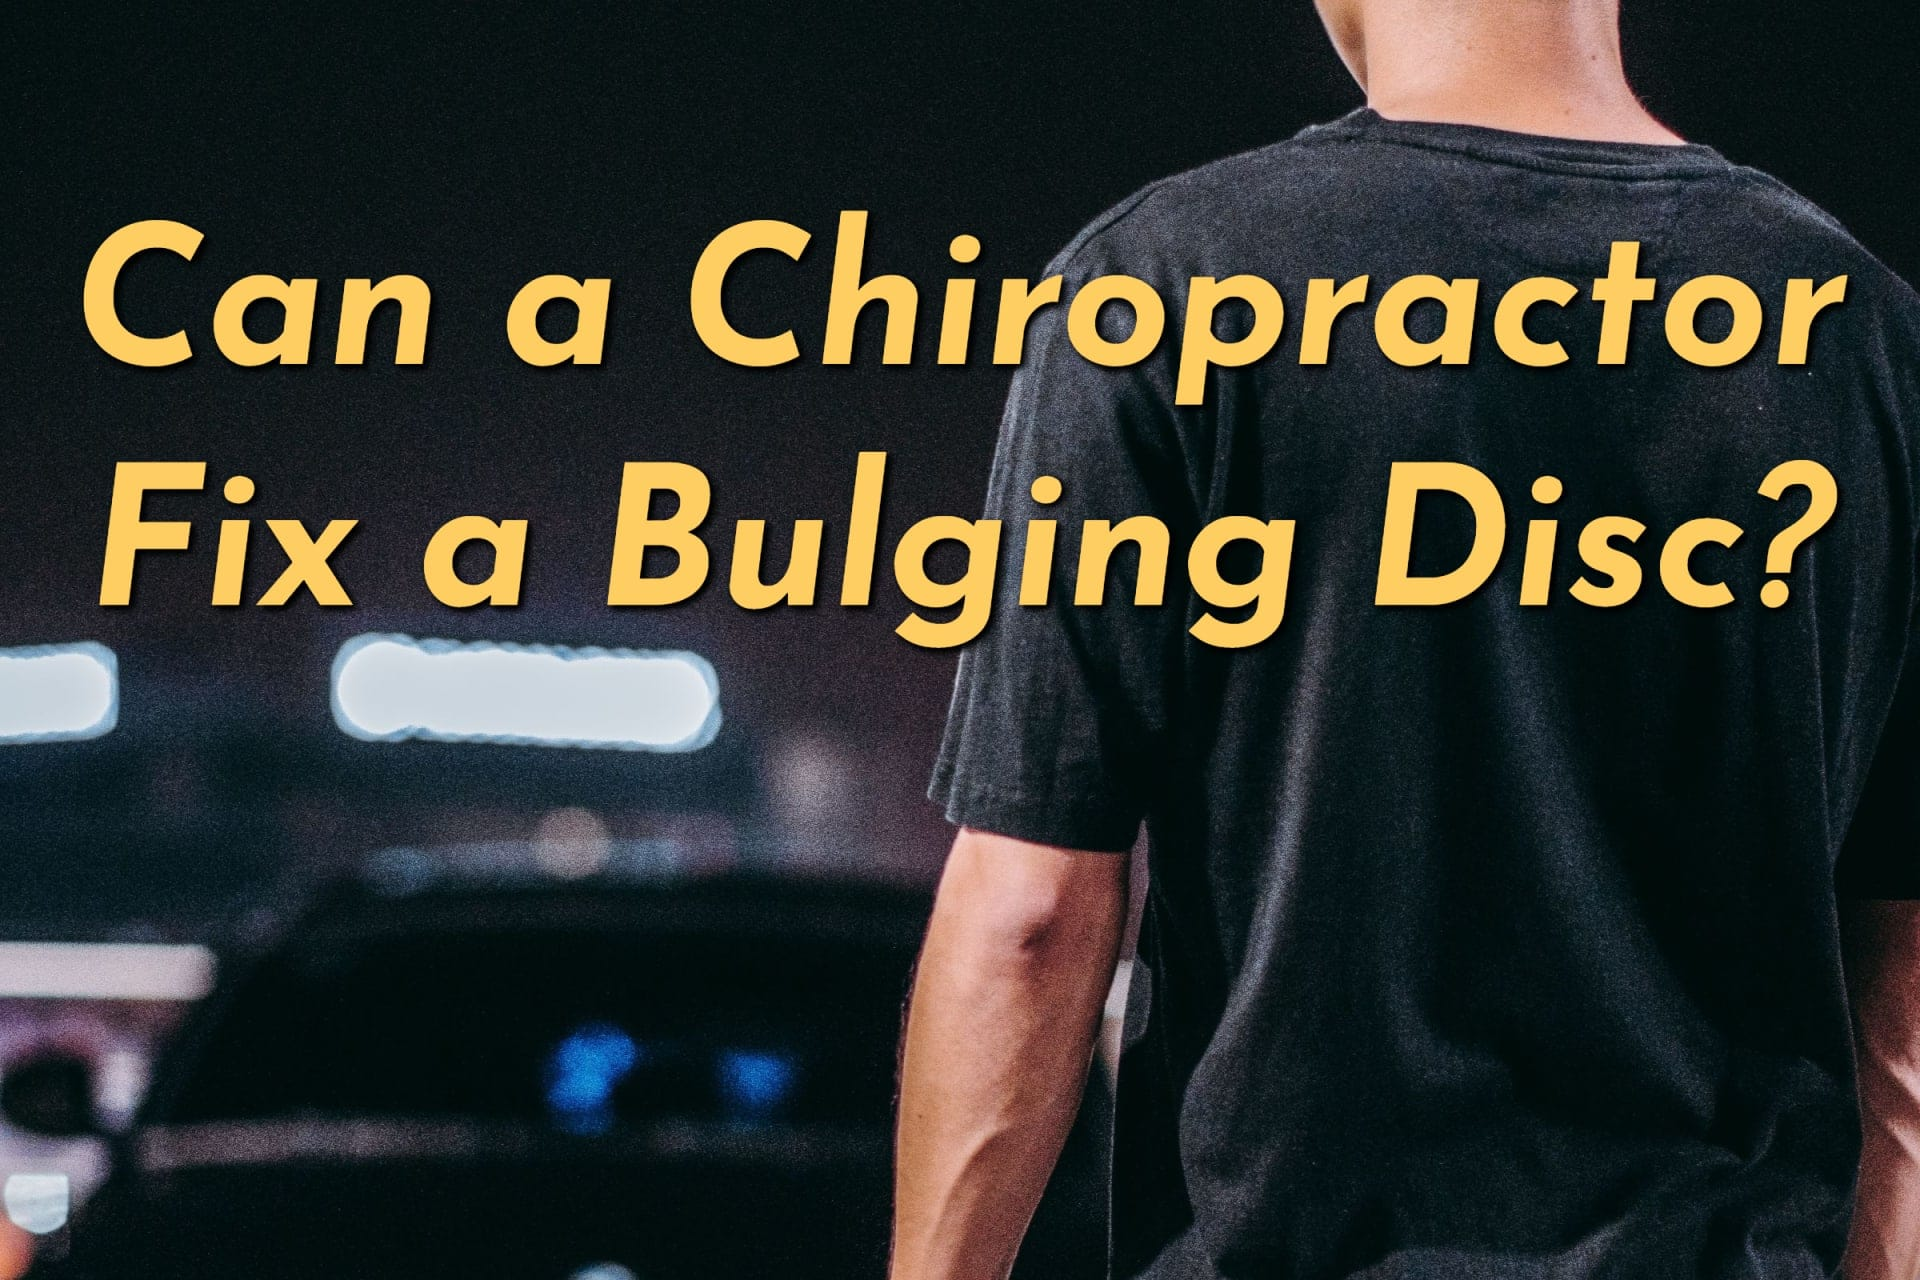 Can a Chiropractor Fix a Bulging Disc?